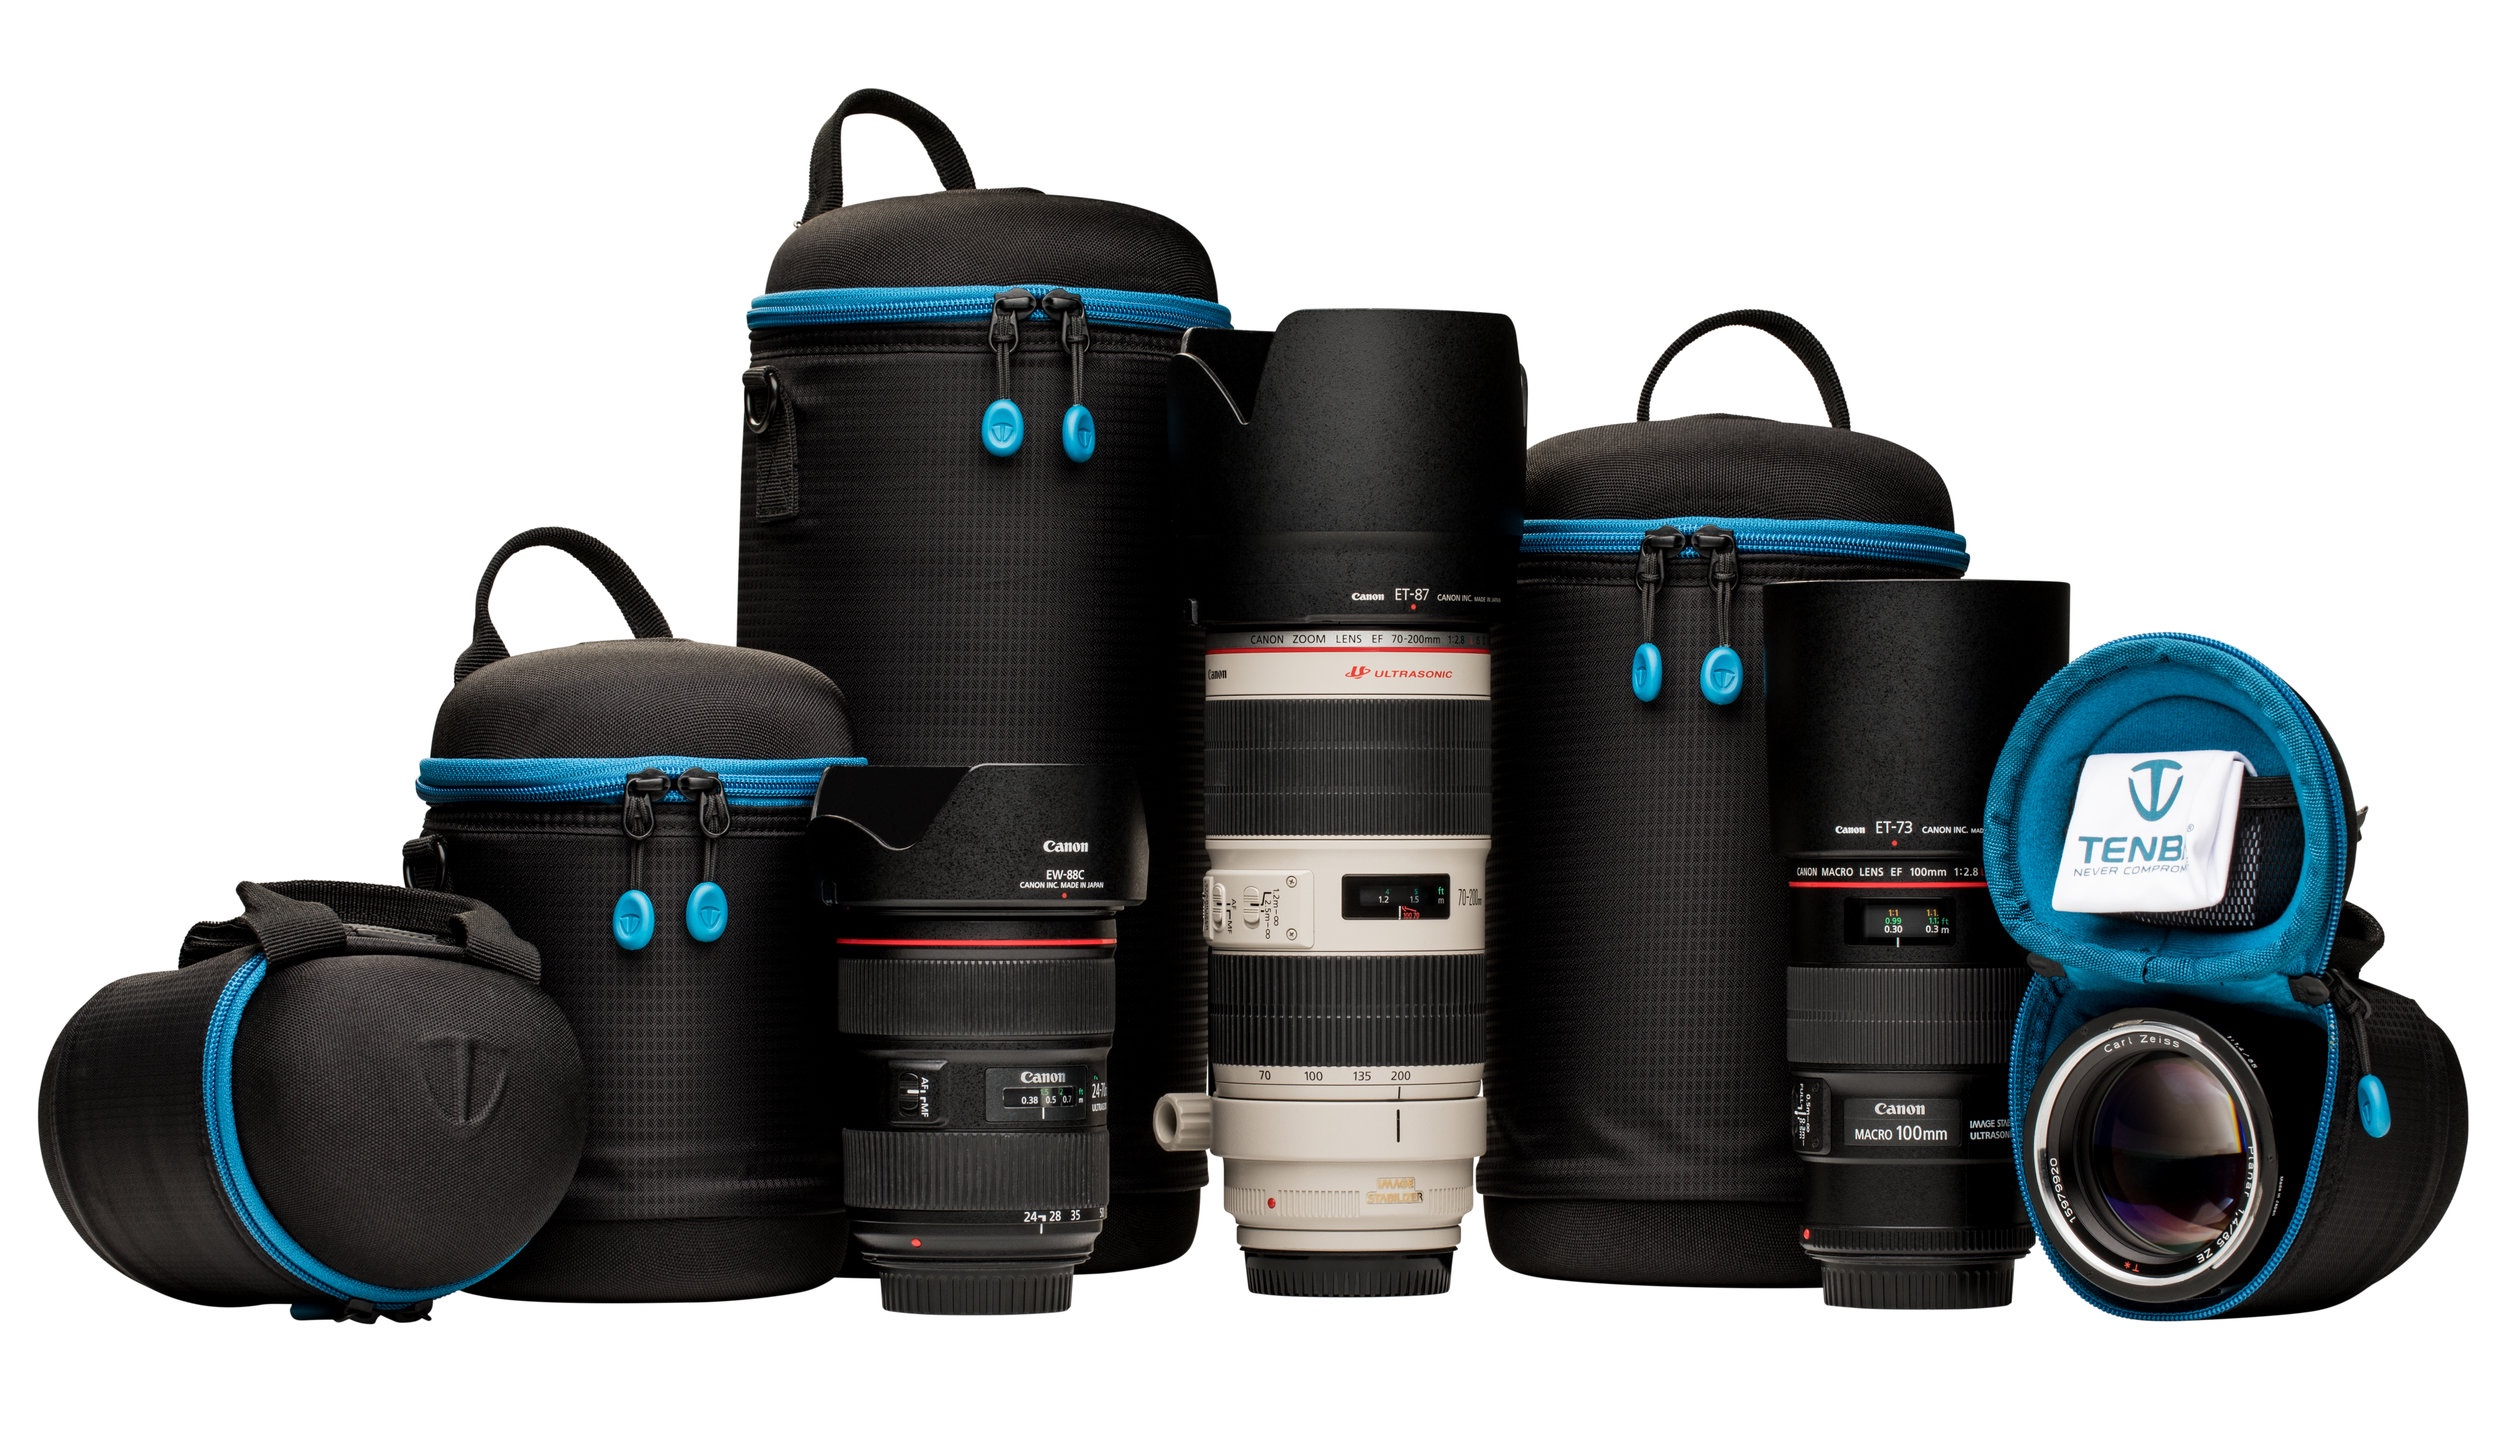 636-357_09_Group_Lenses.jpg